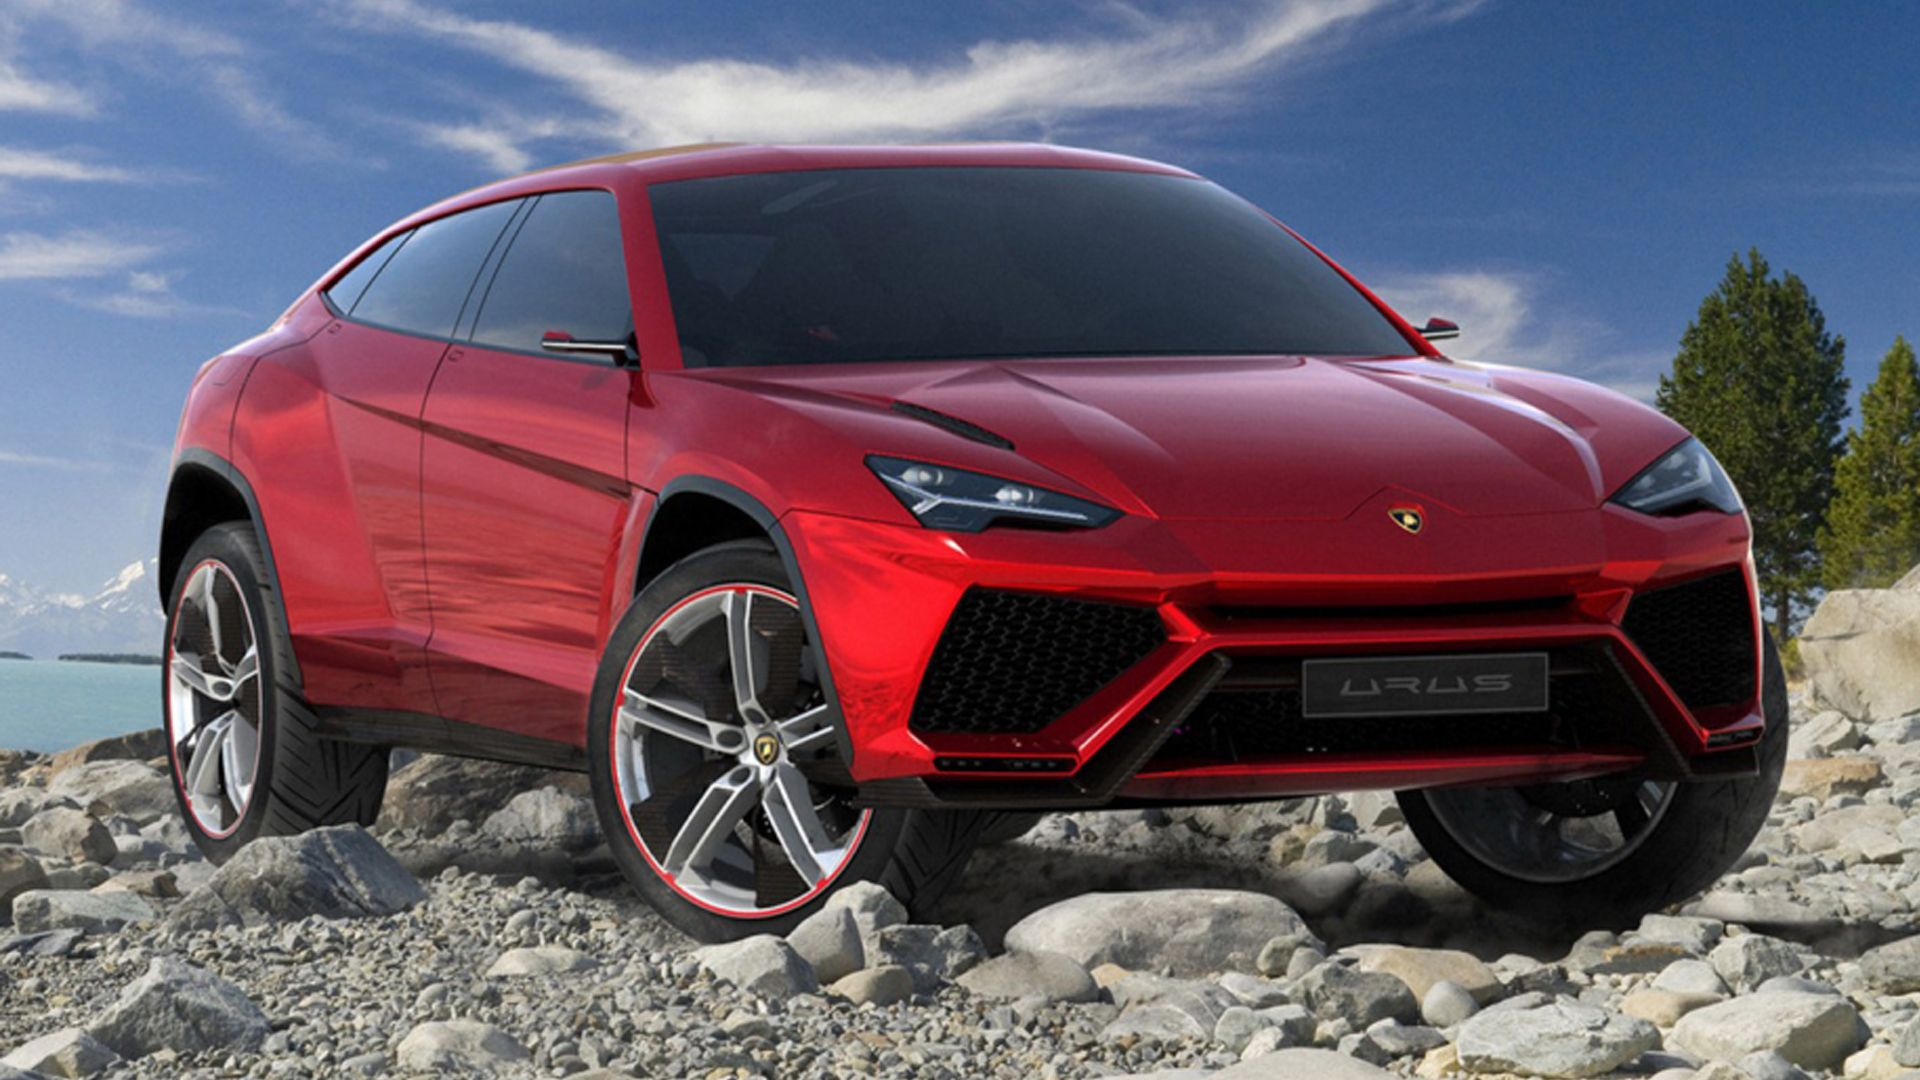 Lamborghini Urus Wallpaper HD Cars Wallpaper Lamborghini 1920x1080